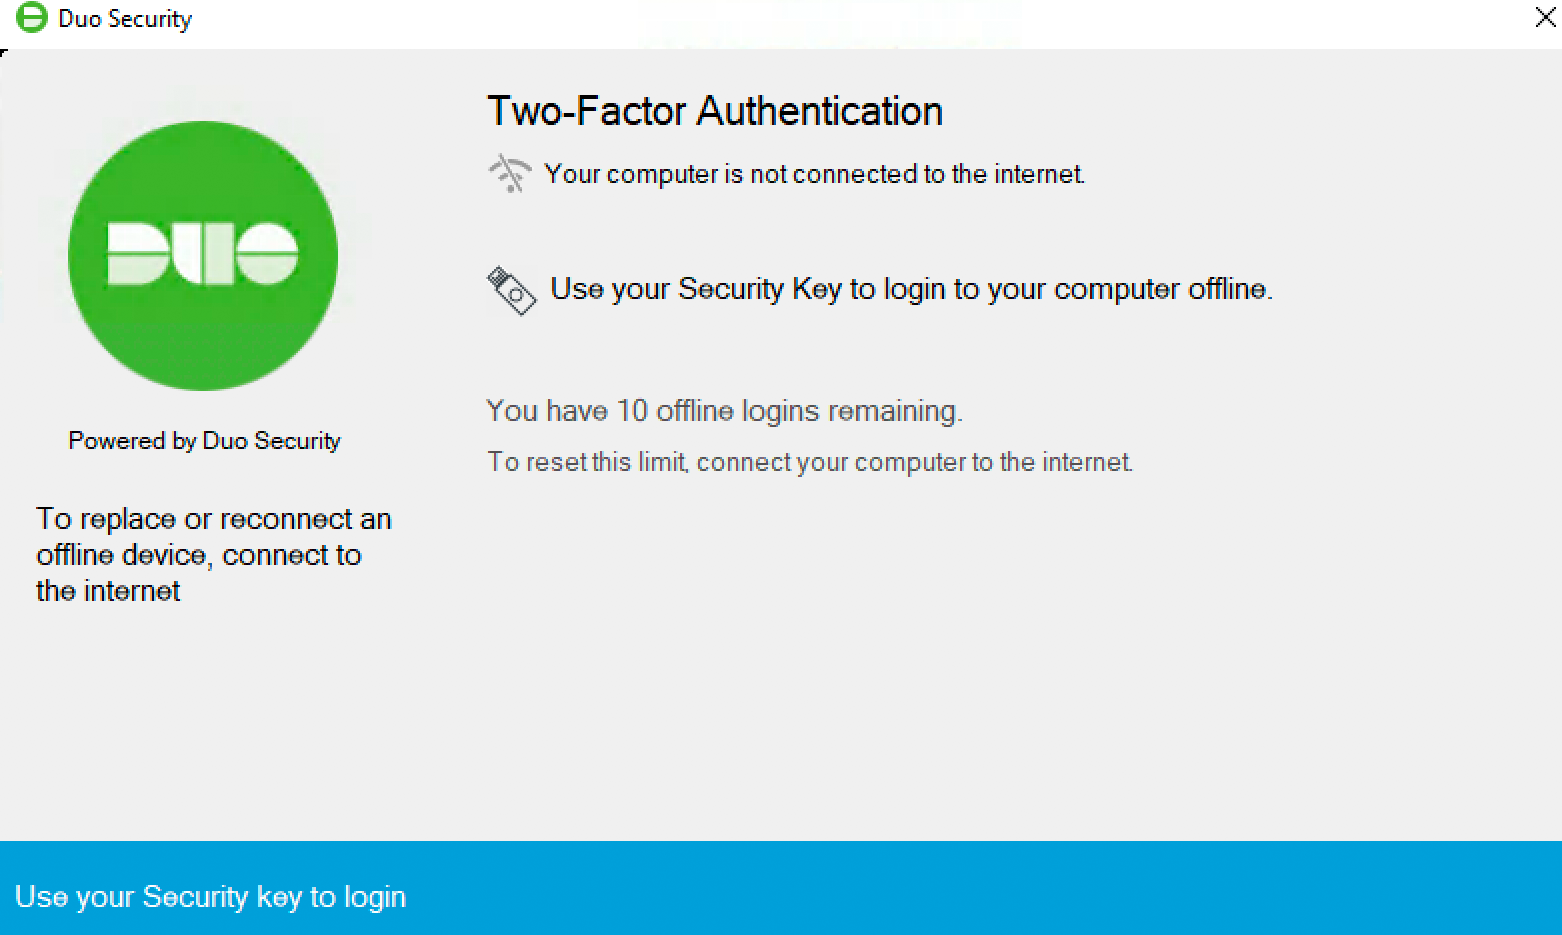 Duo Offline Authentication with Security Key